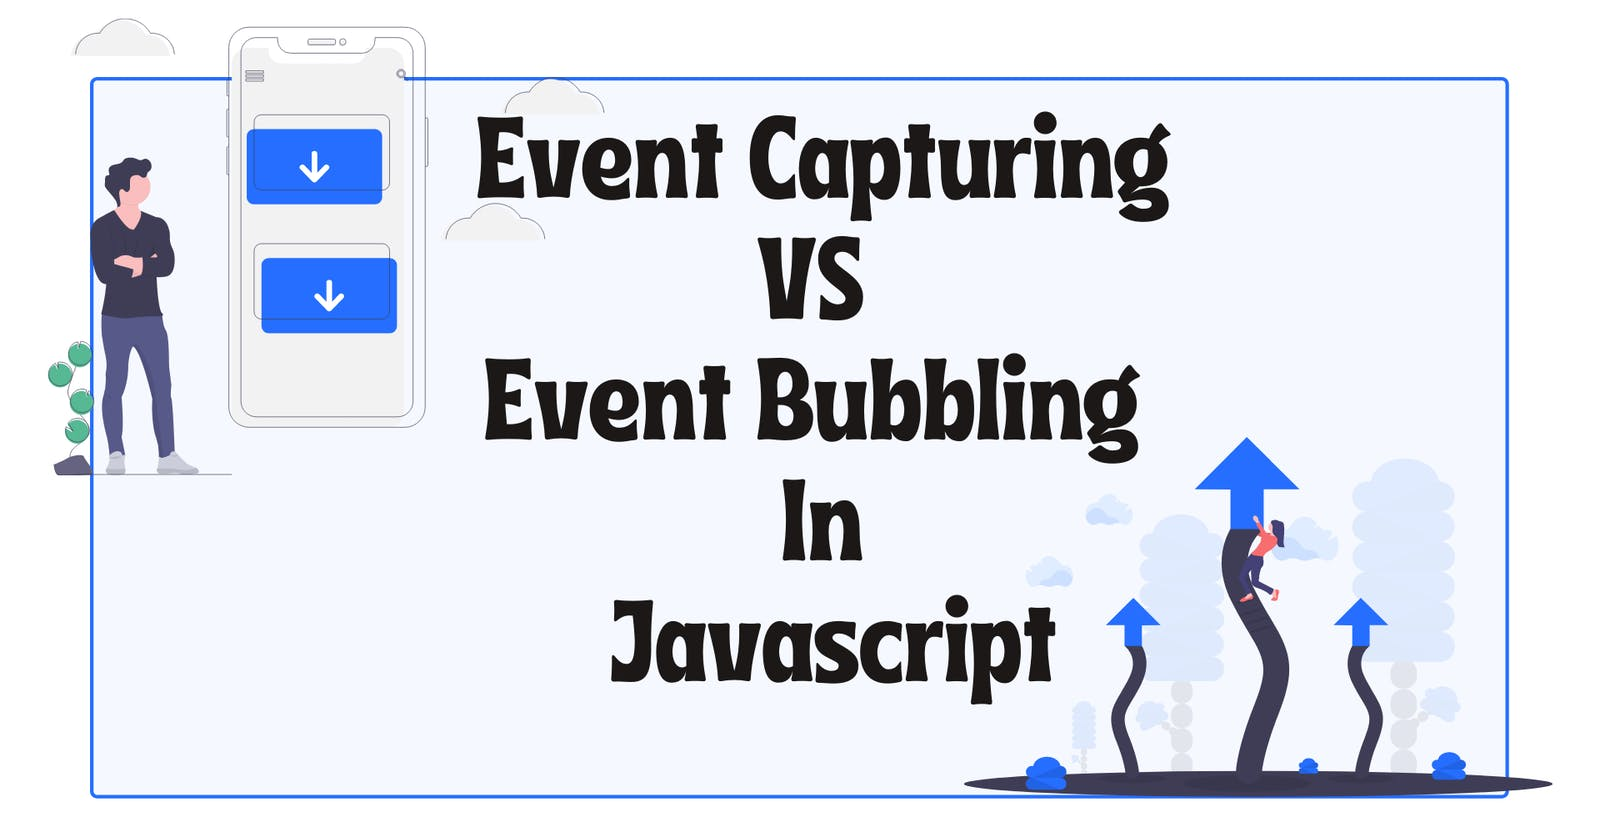 Event Capturing Vs Event Bubbling In Javascript